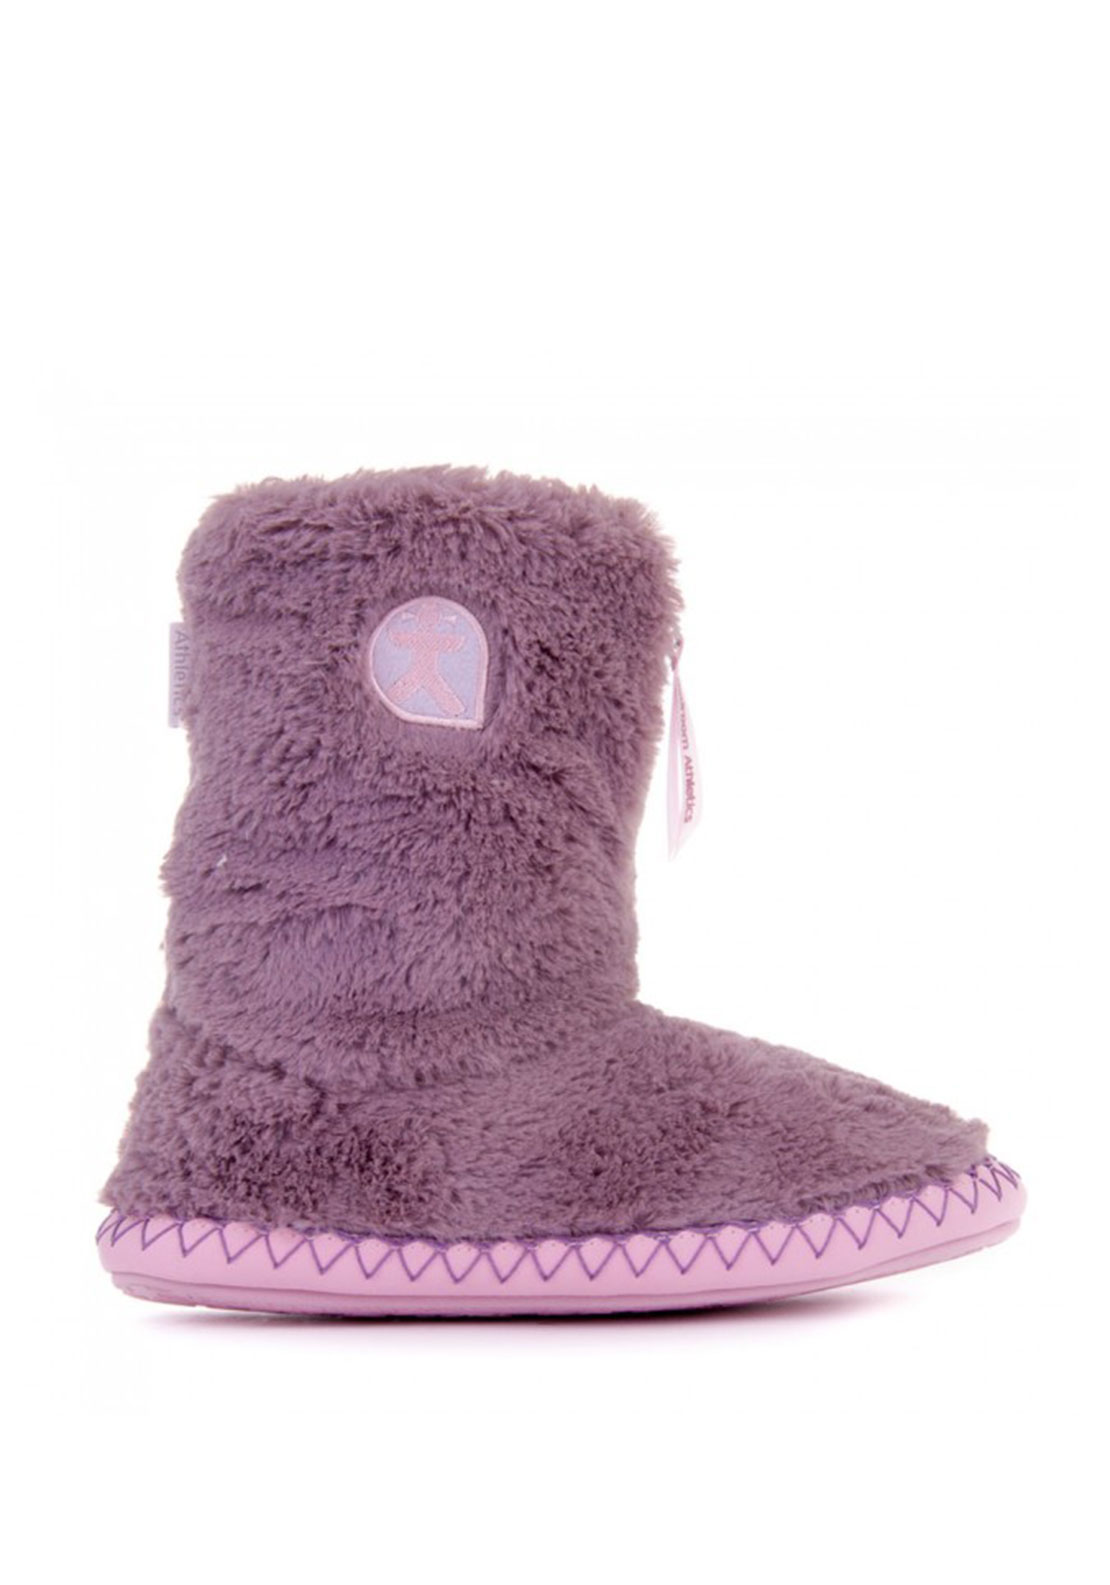 Bedroom Athletics Monroe Slipper Boots, Purple